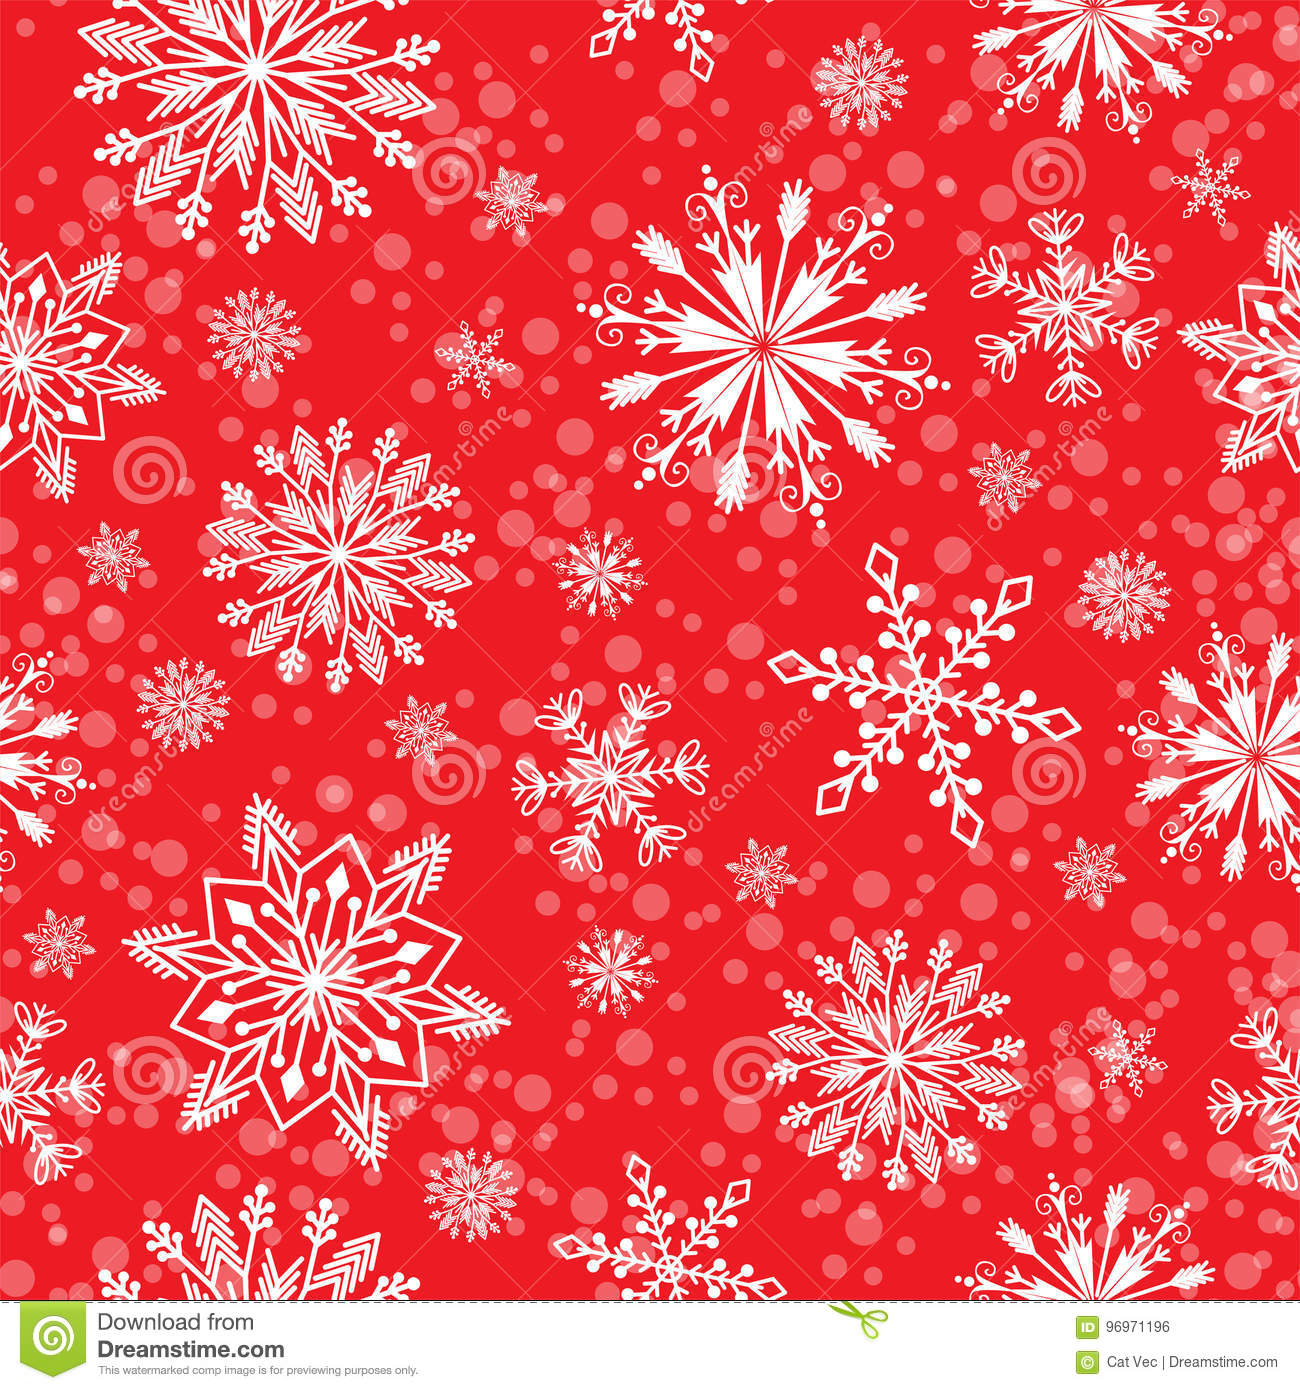 Snowflake vector seamless pattern weather traditional winter december wrapping paper christmas background.